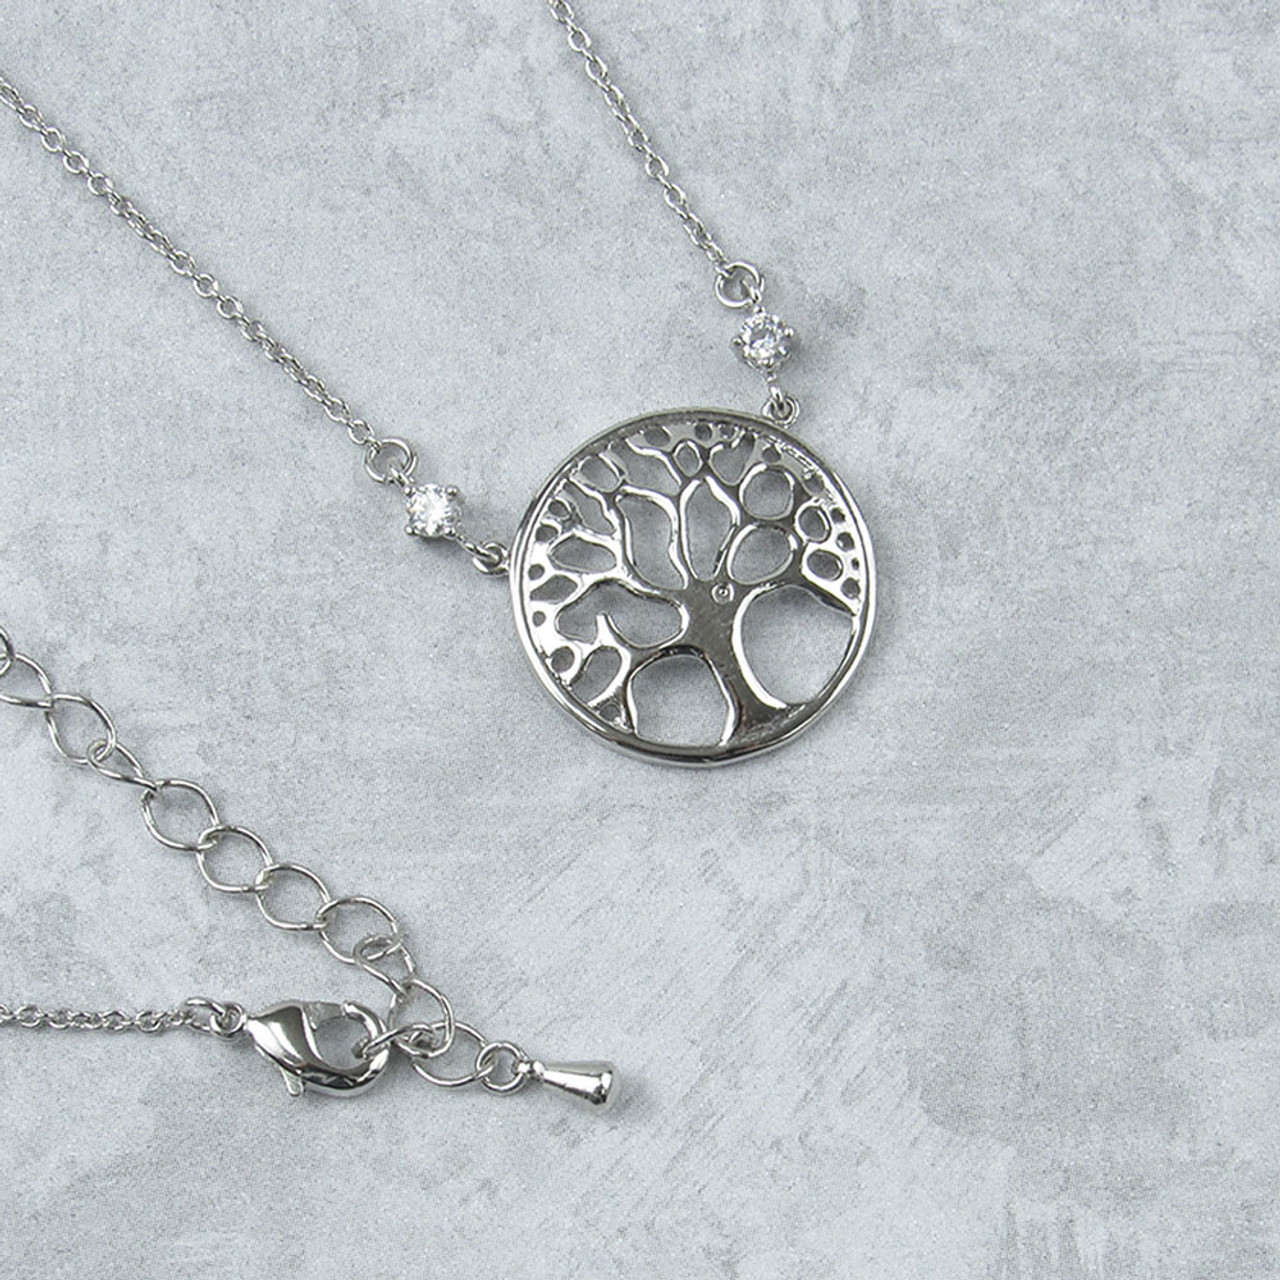 Tree Of Life Necklace with Crystals from Swarovski®